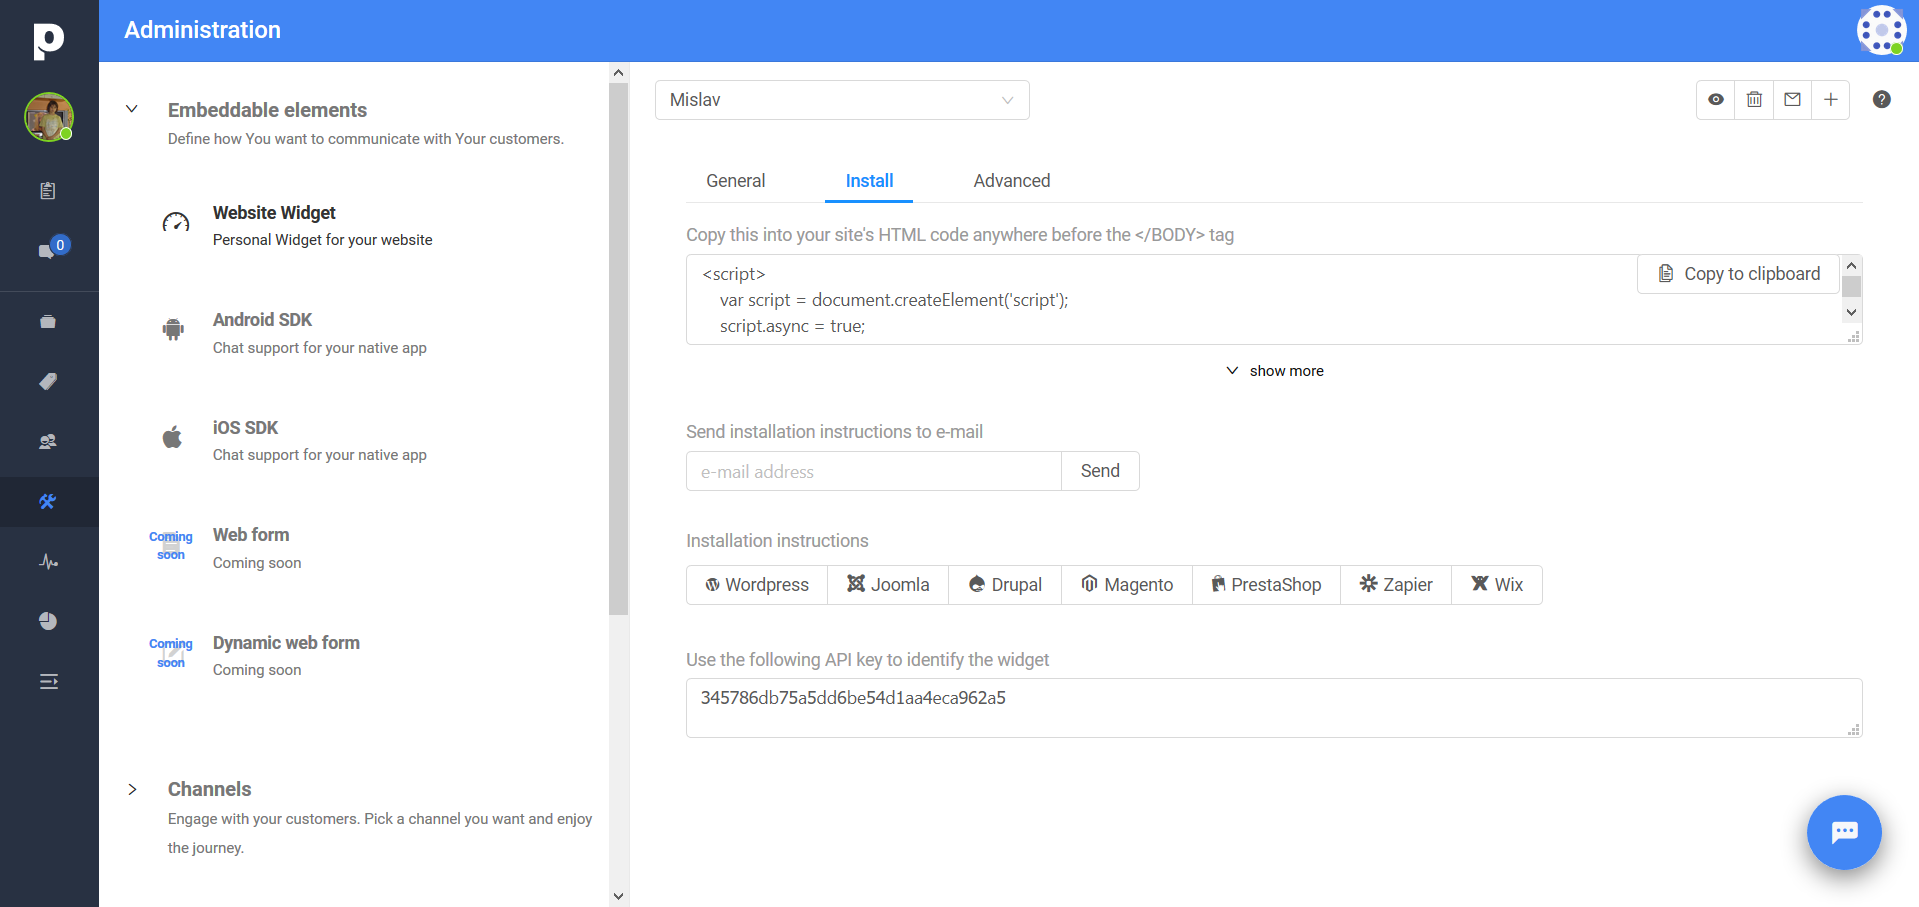 API key from Administration in Paldesk